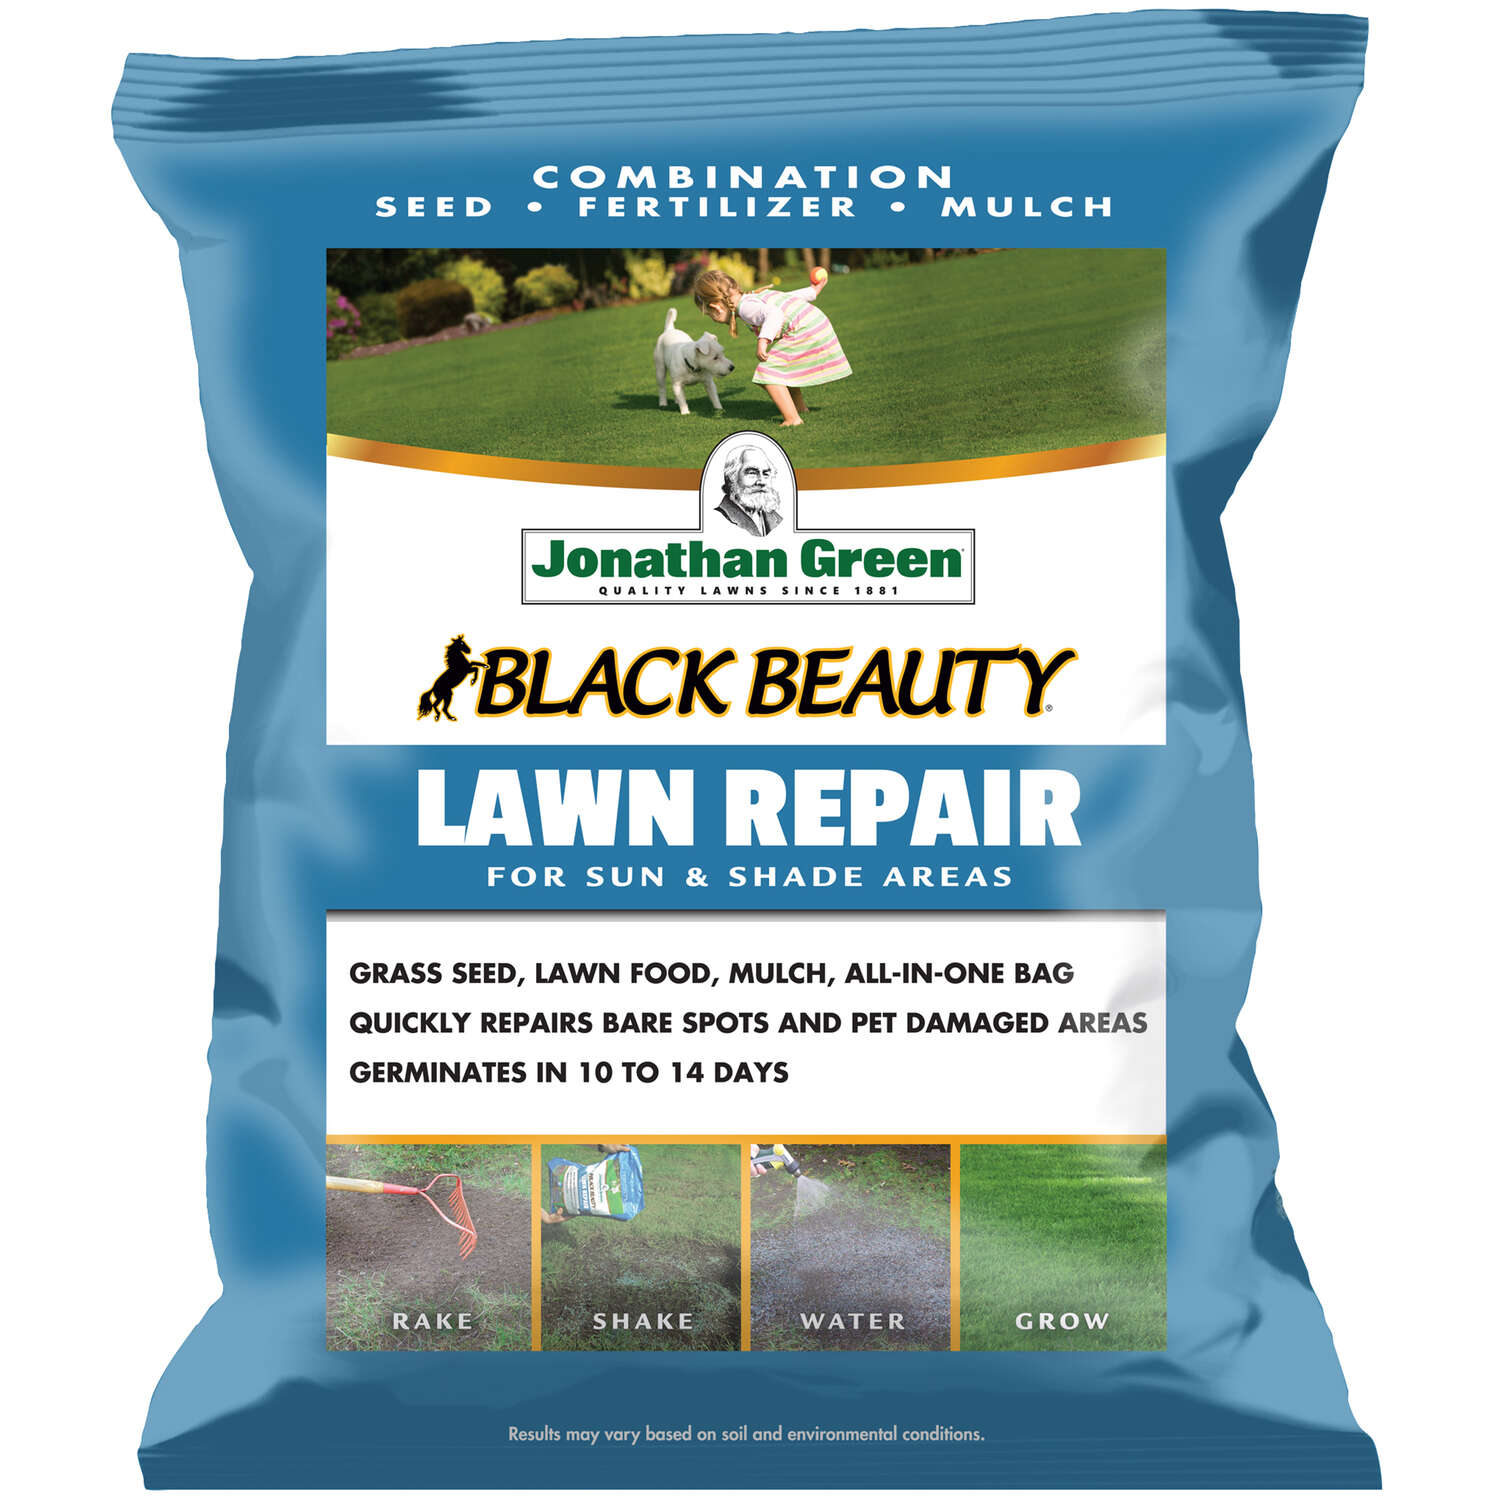 Jonathan Green  Black Beauty Lawn Repair  Mixed  Sun/Shade  Seed, Mulch & Fertilizer  4.5 lb.